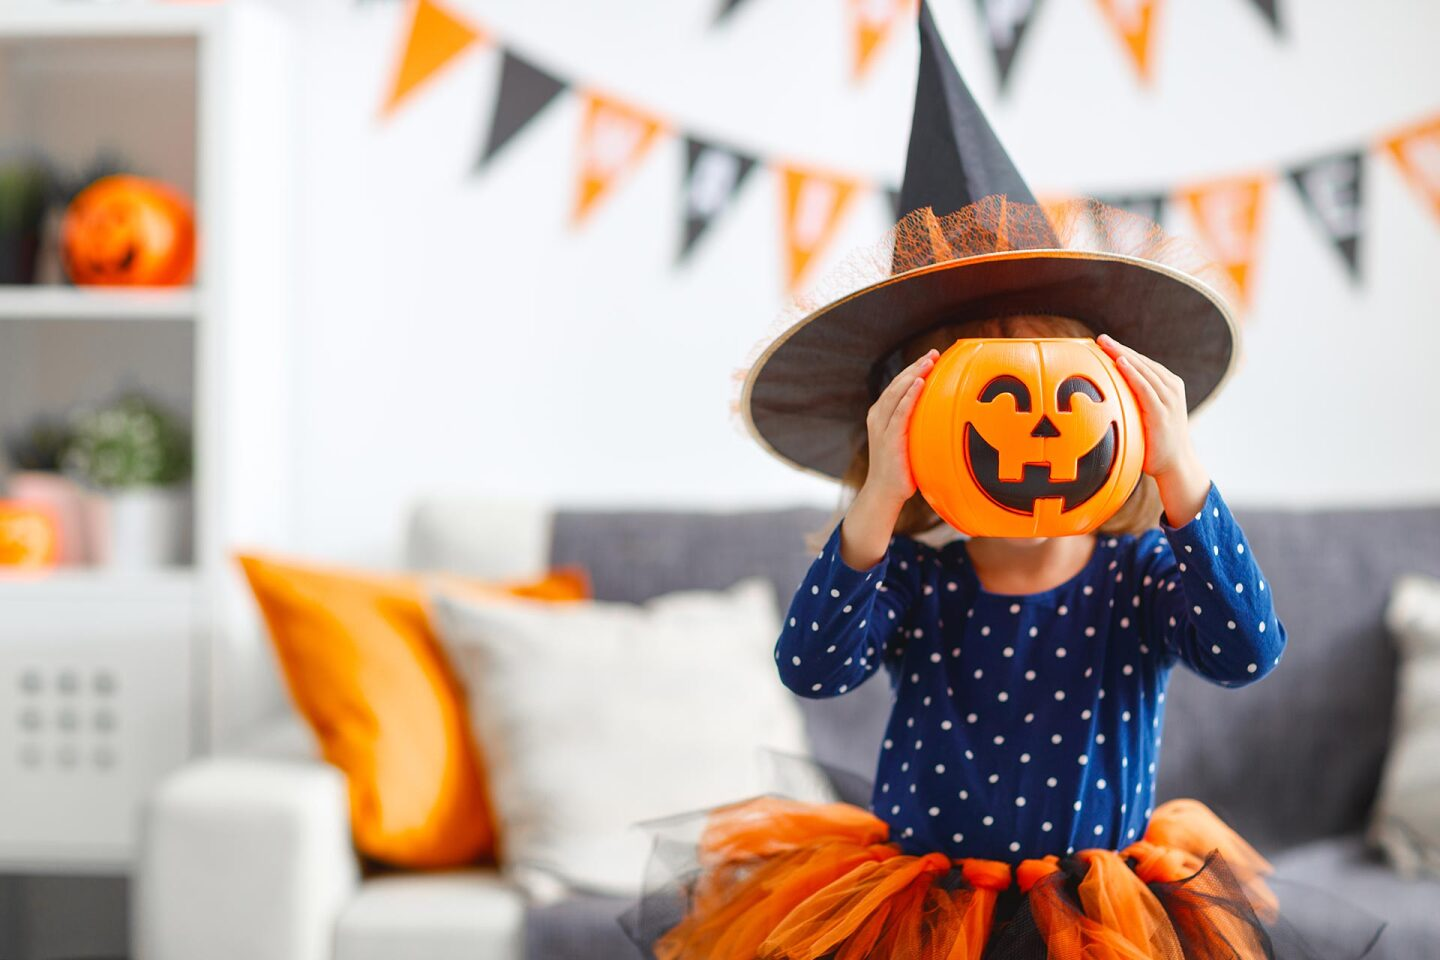 A little girl in a witch hat holds a plastic jack o' lantern over her face.